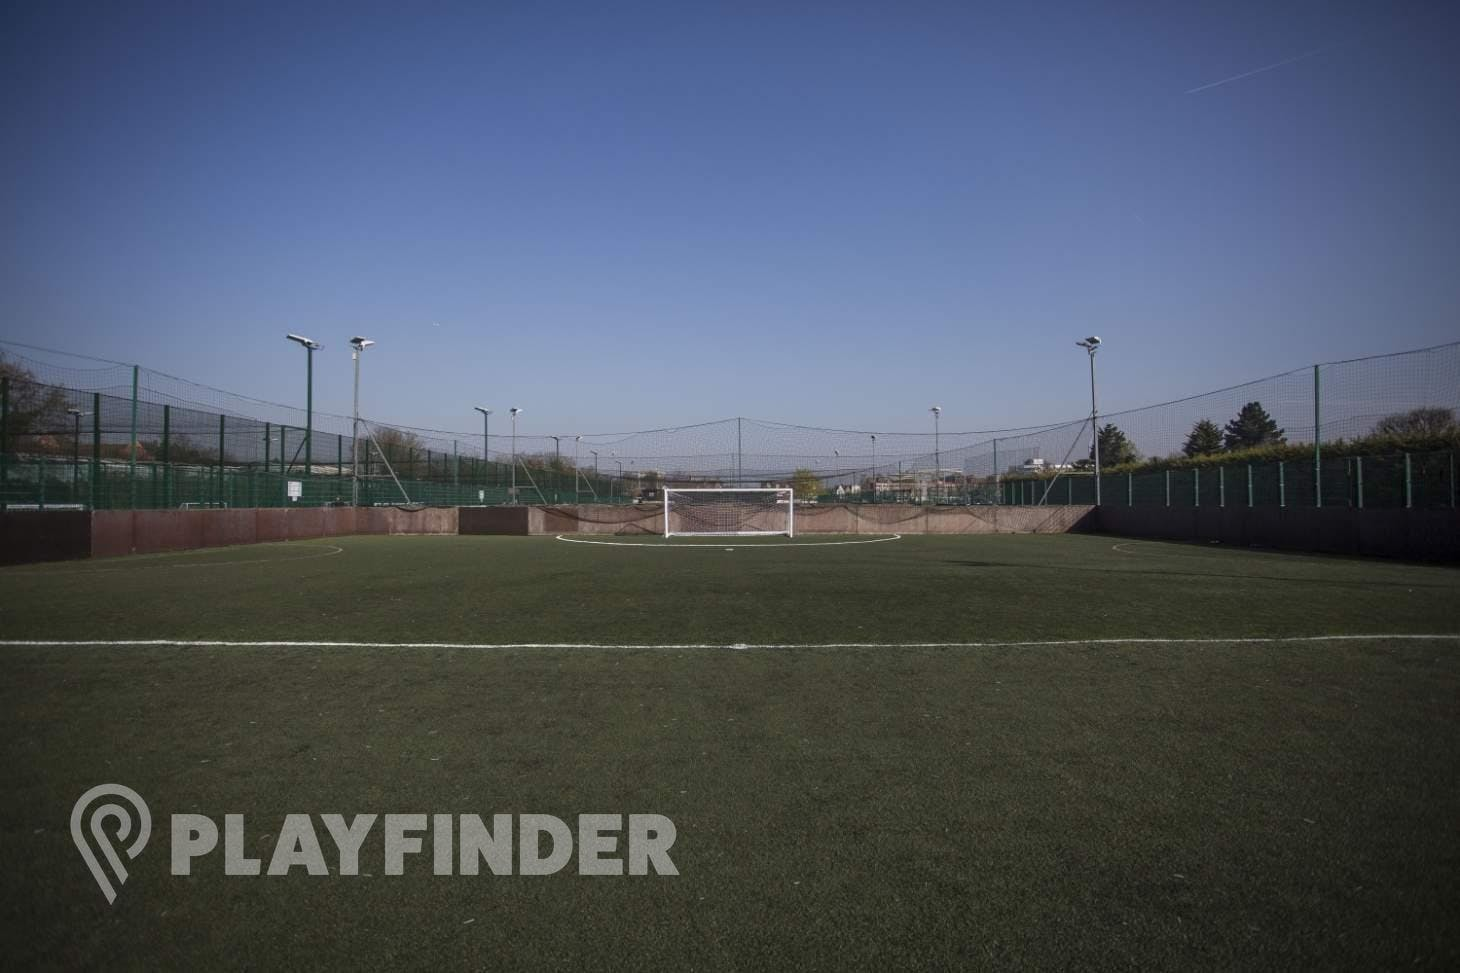 Jubilee Sports Ground (St Dunstan's Enterprises) 7 a side | 3G Astroturf football pitch